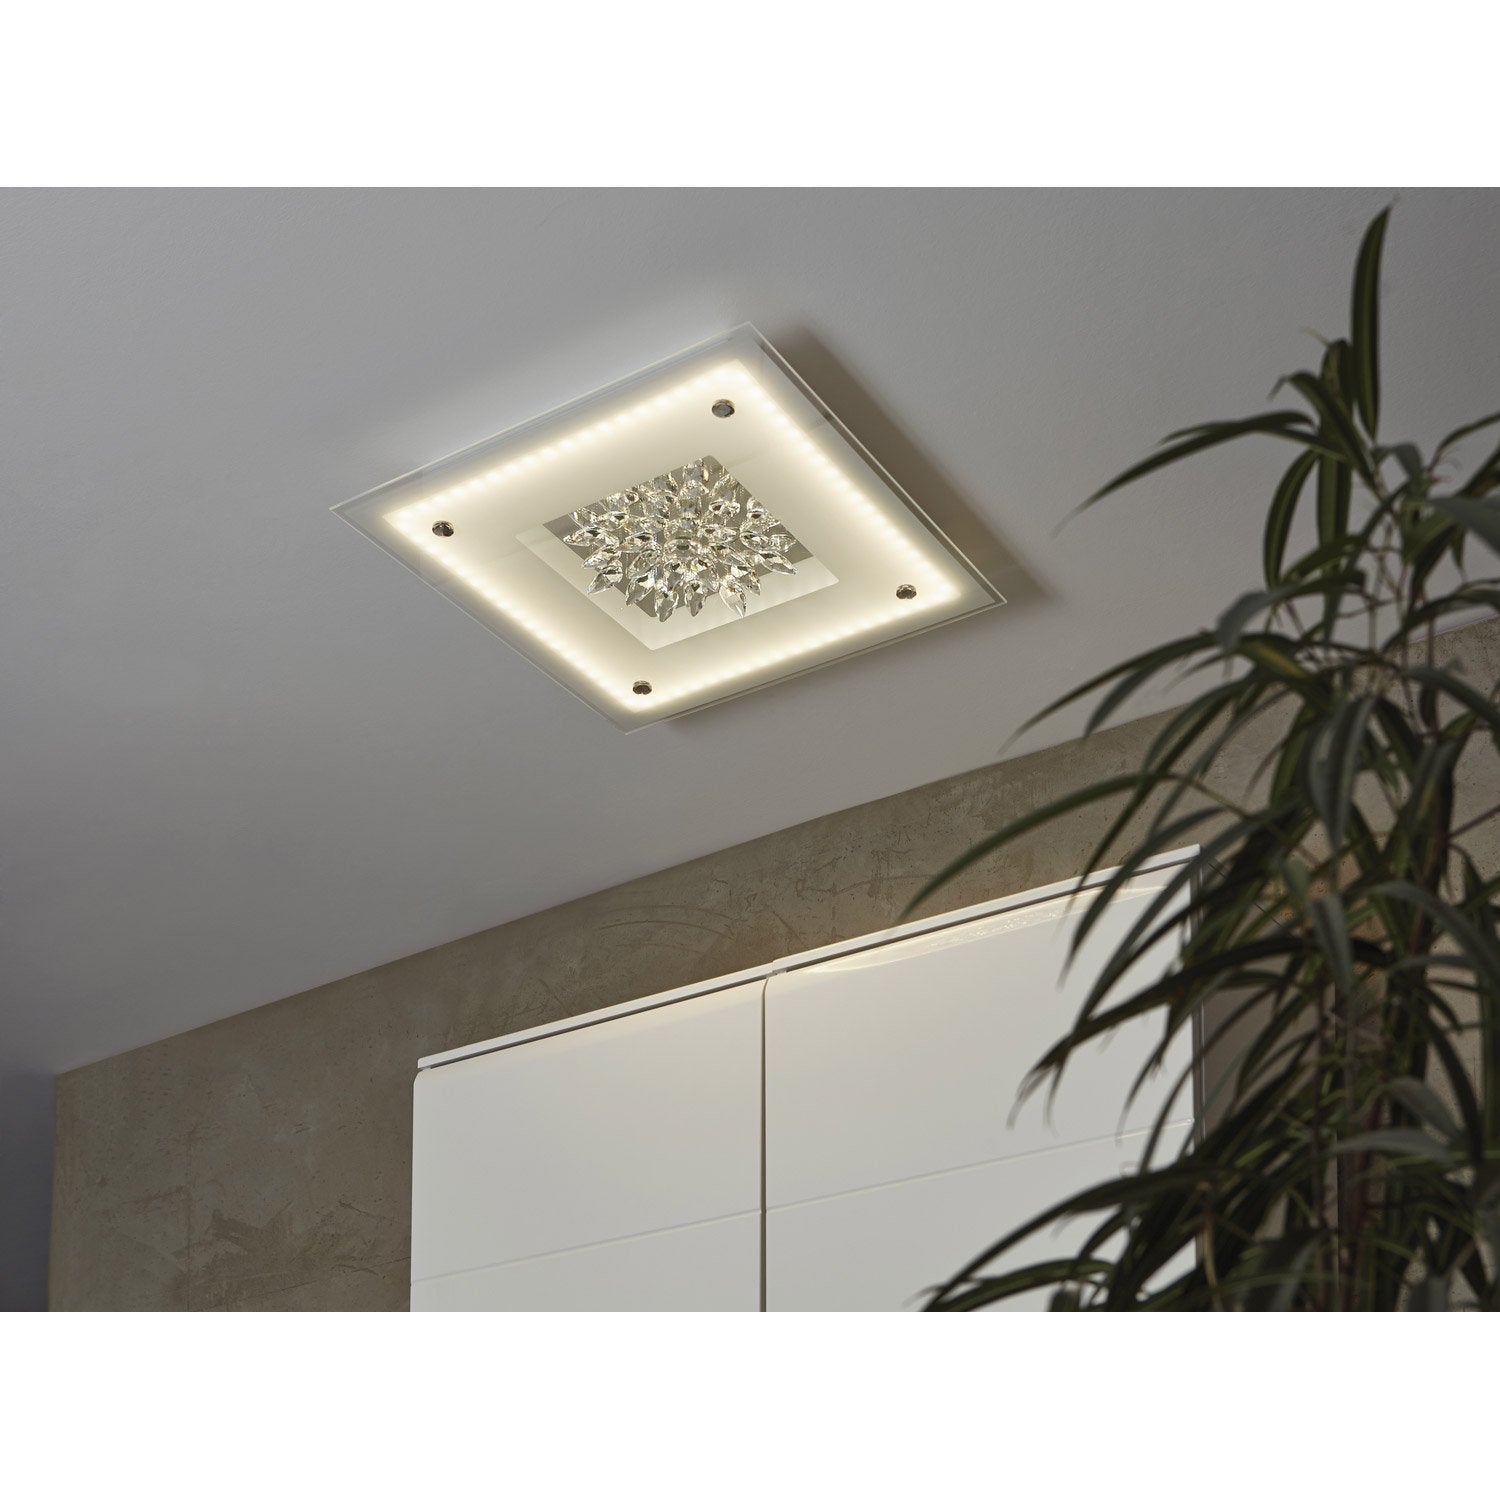 Leroy Merlin Plafonnier Led Lustre Led Leroy Merlin Fort De France